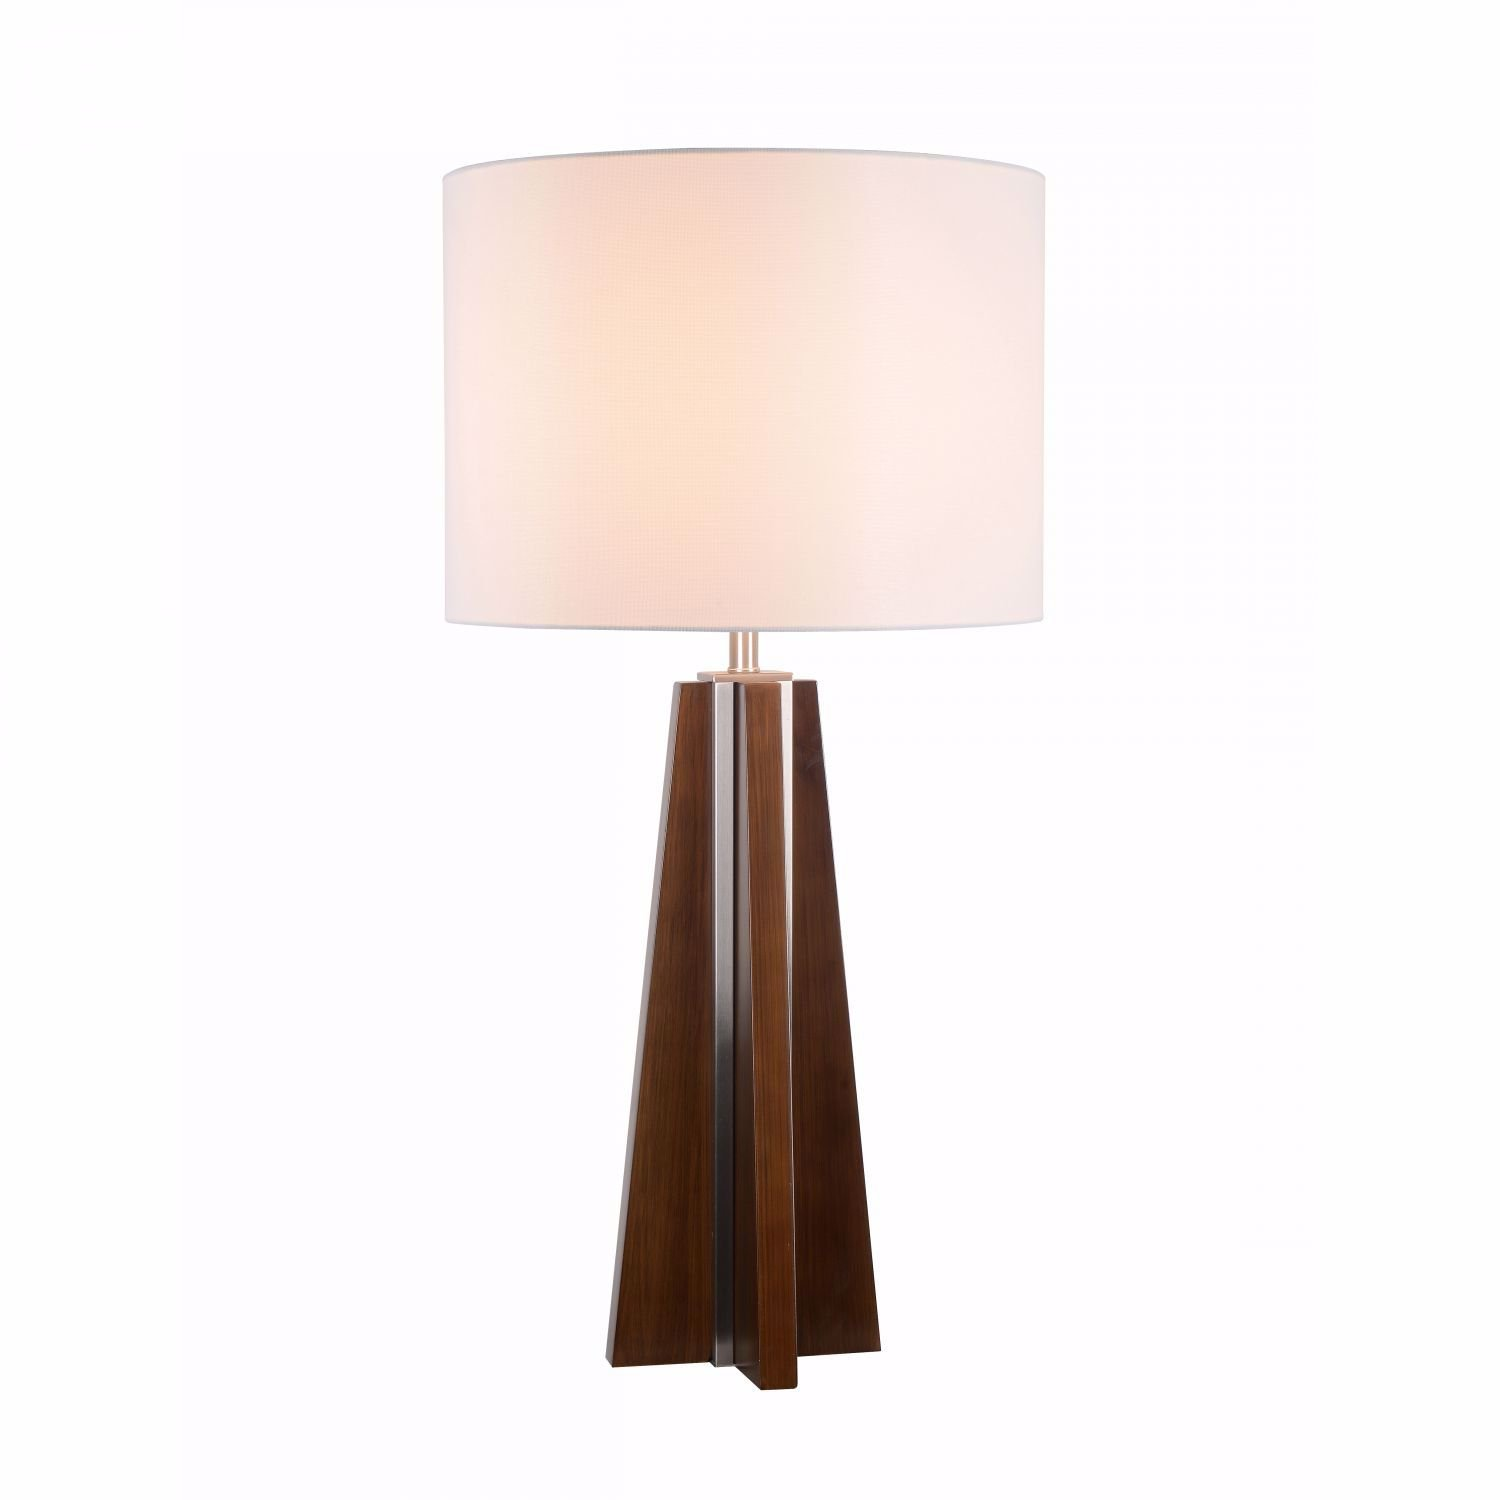 Picture of Walnut Wood And Steel Lamp